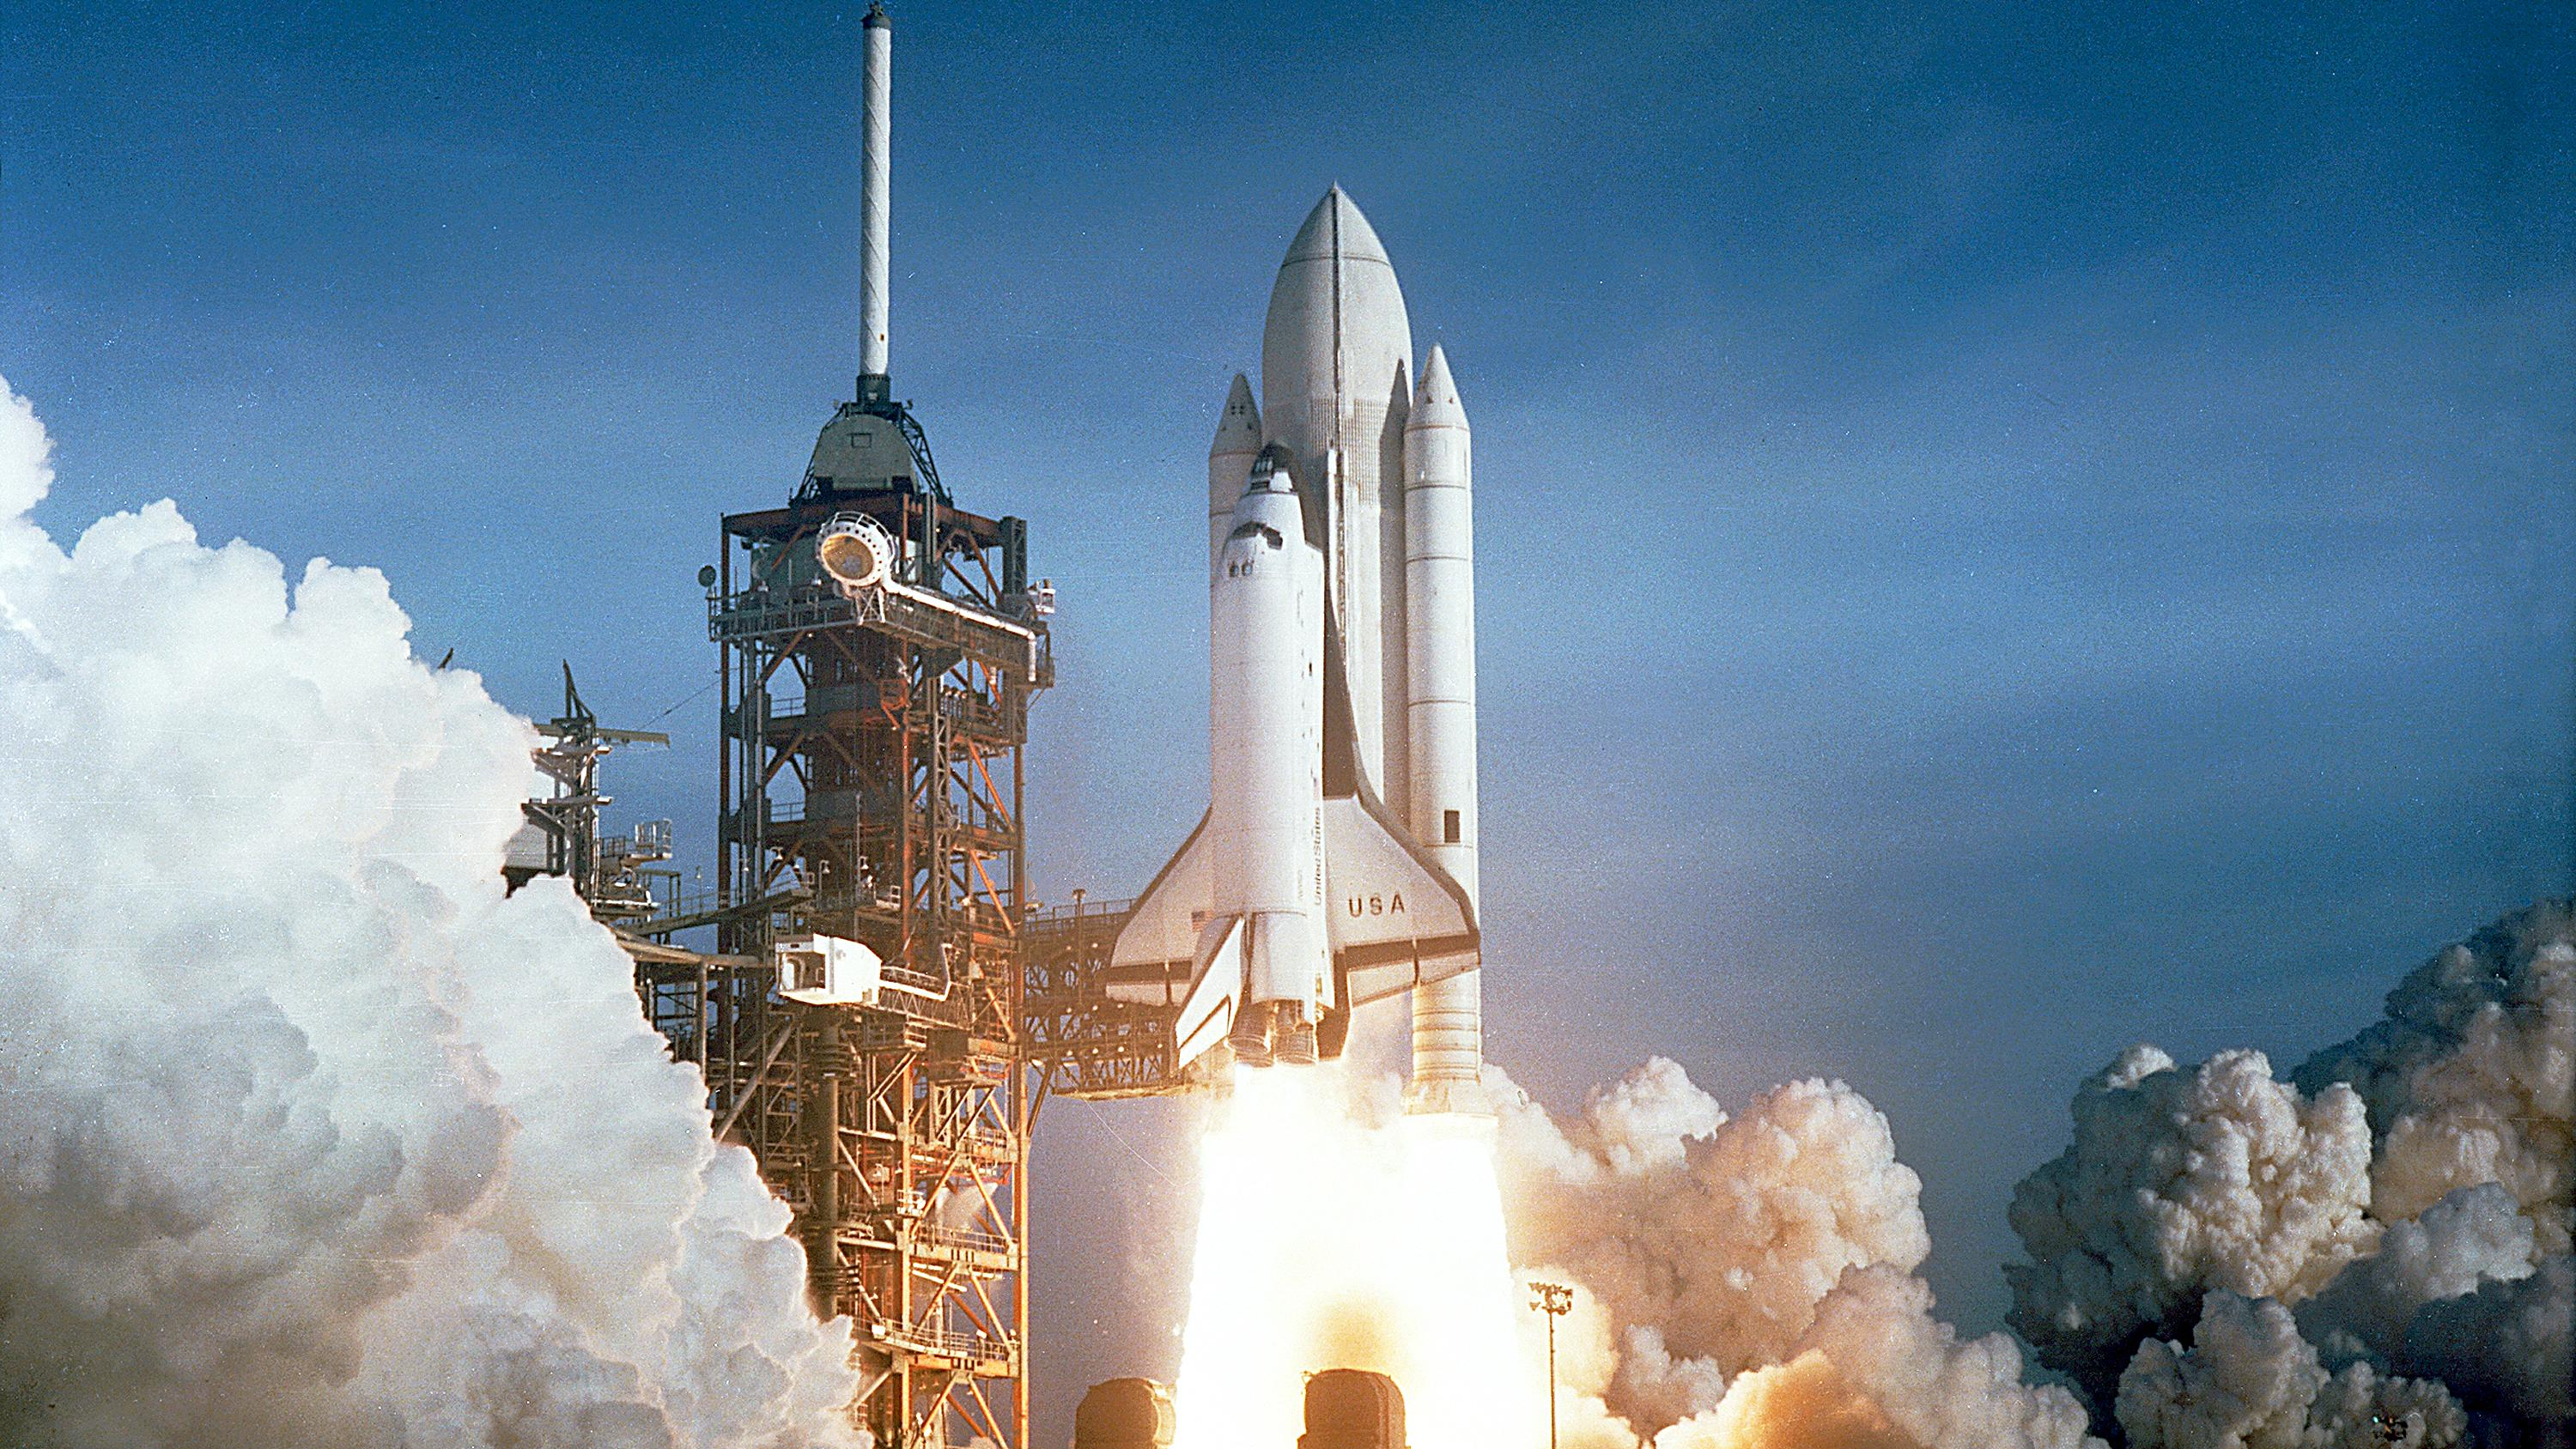 Other Space Shuttle Launch - Science Wallpaper Image featuring Space